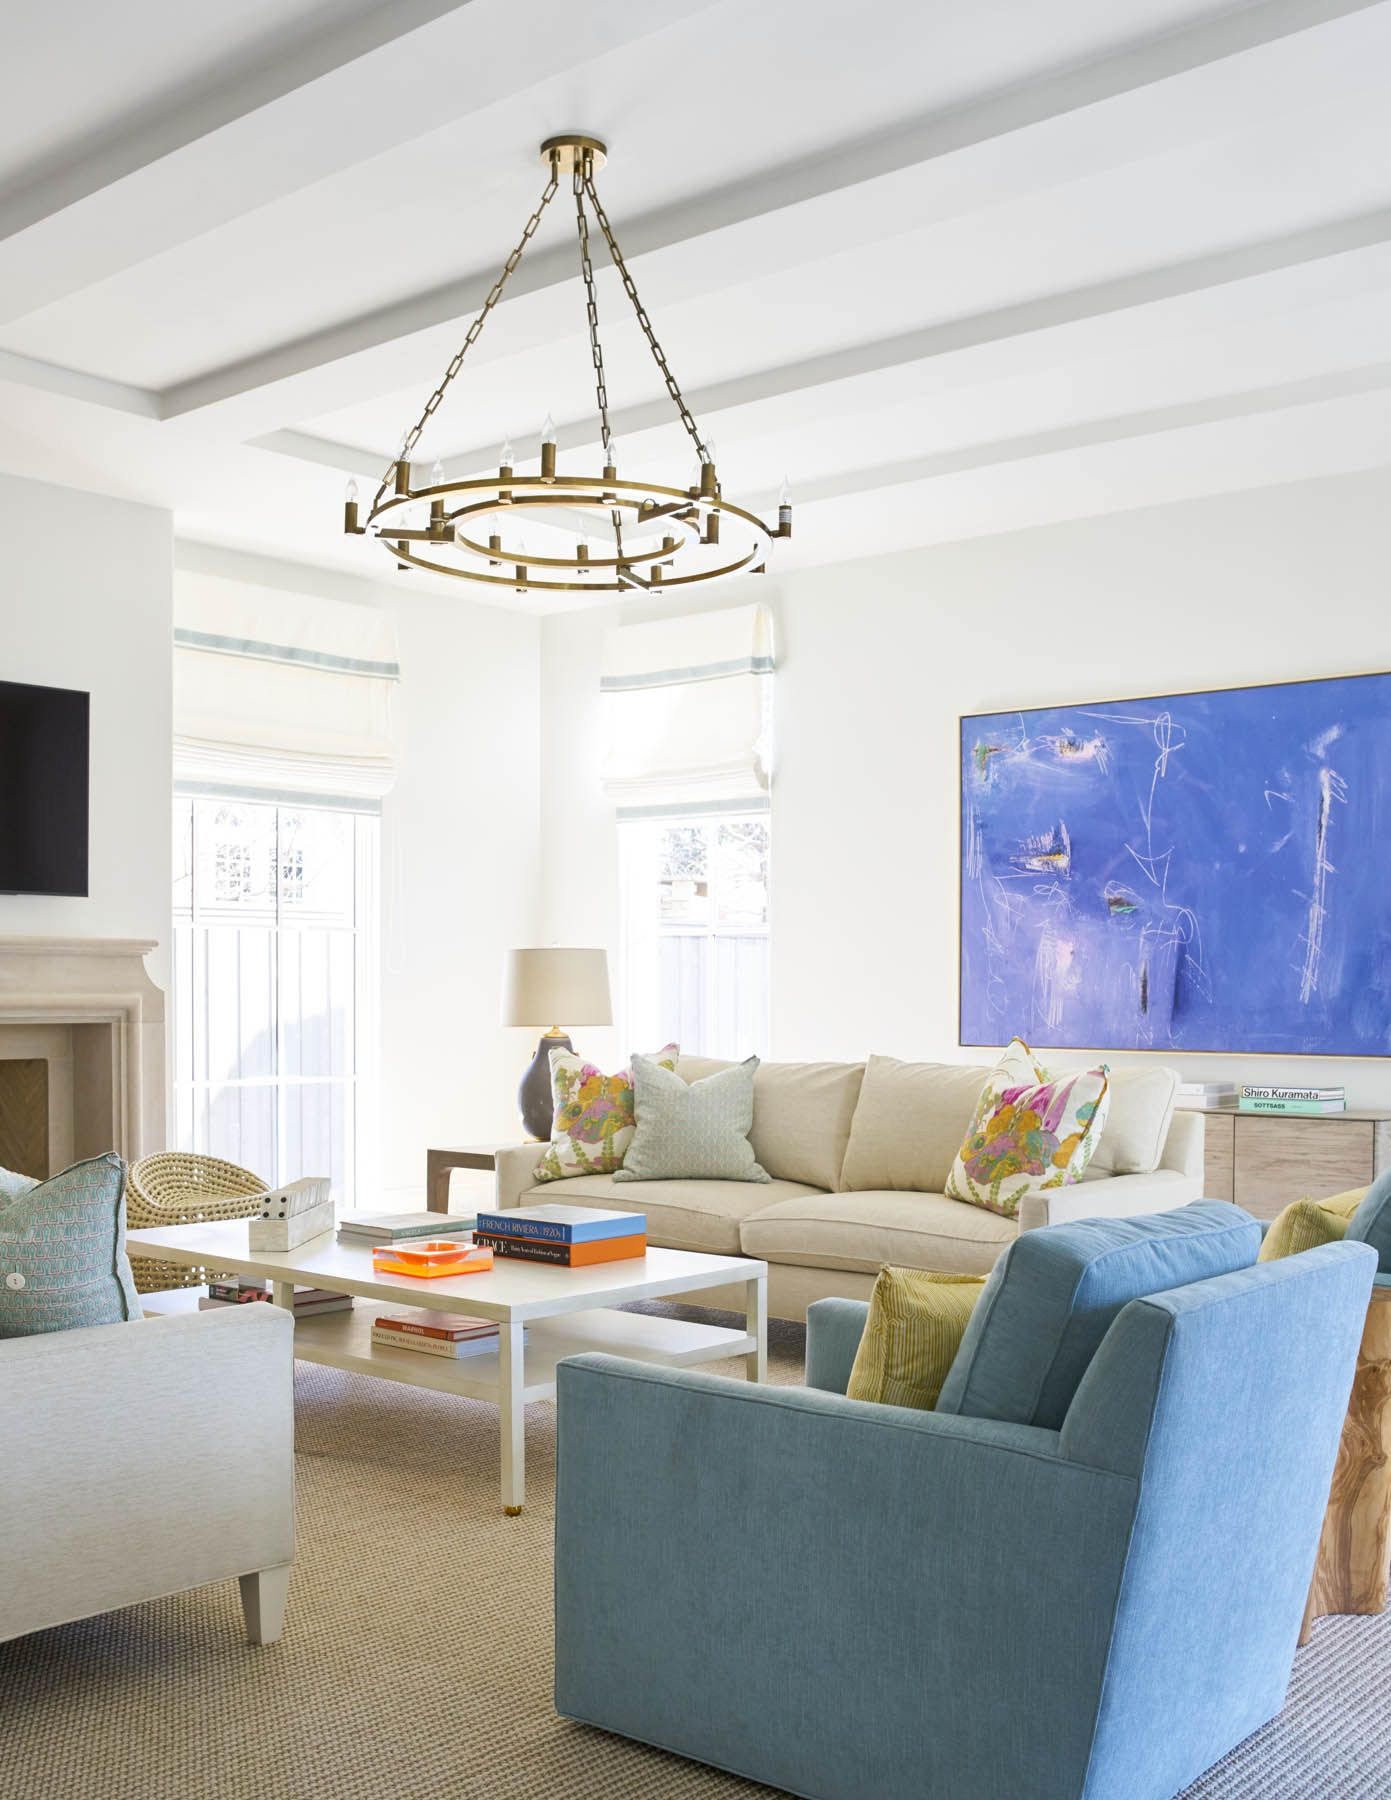 Light Bright And Colorful Great Room Interior Design By Jenkins Interiors Home Accessories From Blue Print Blueprint